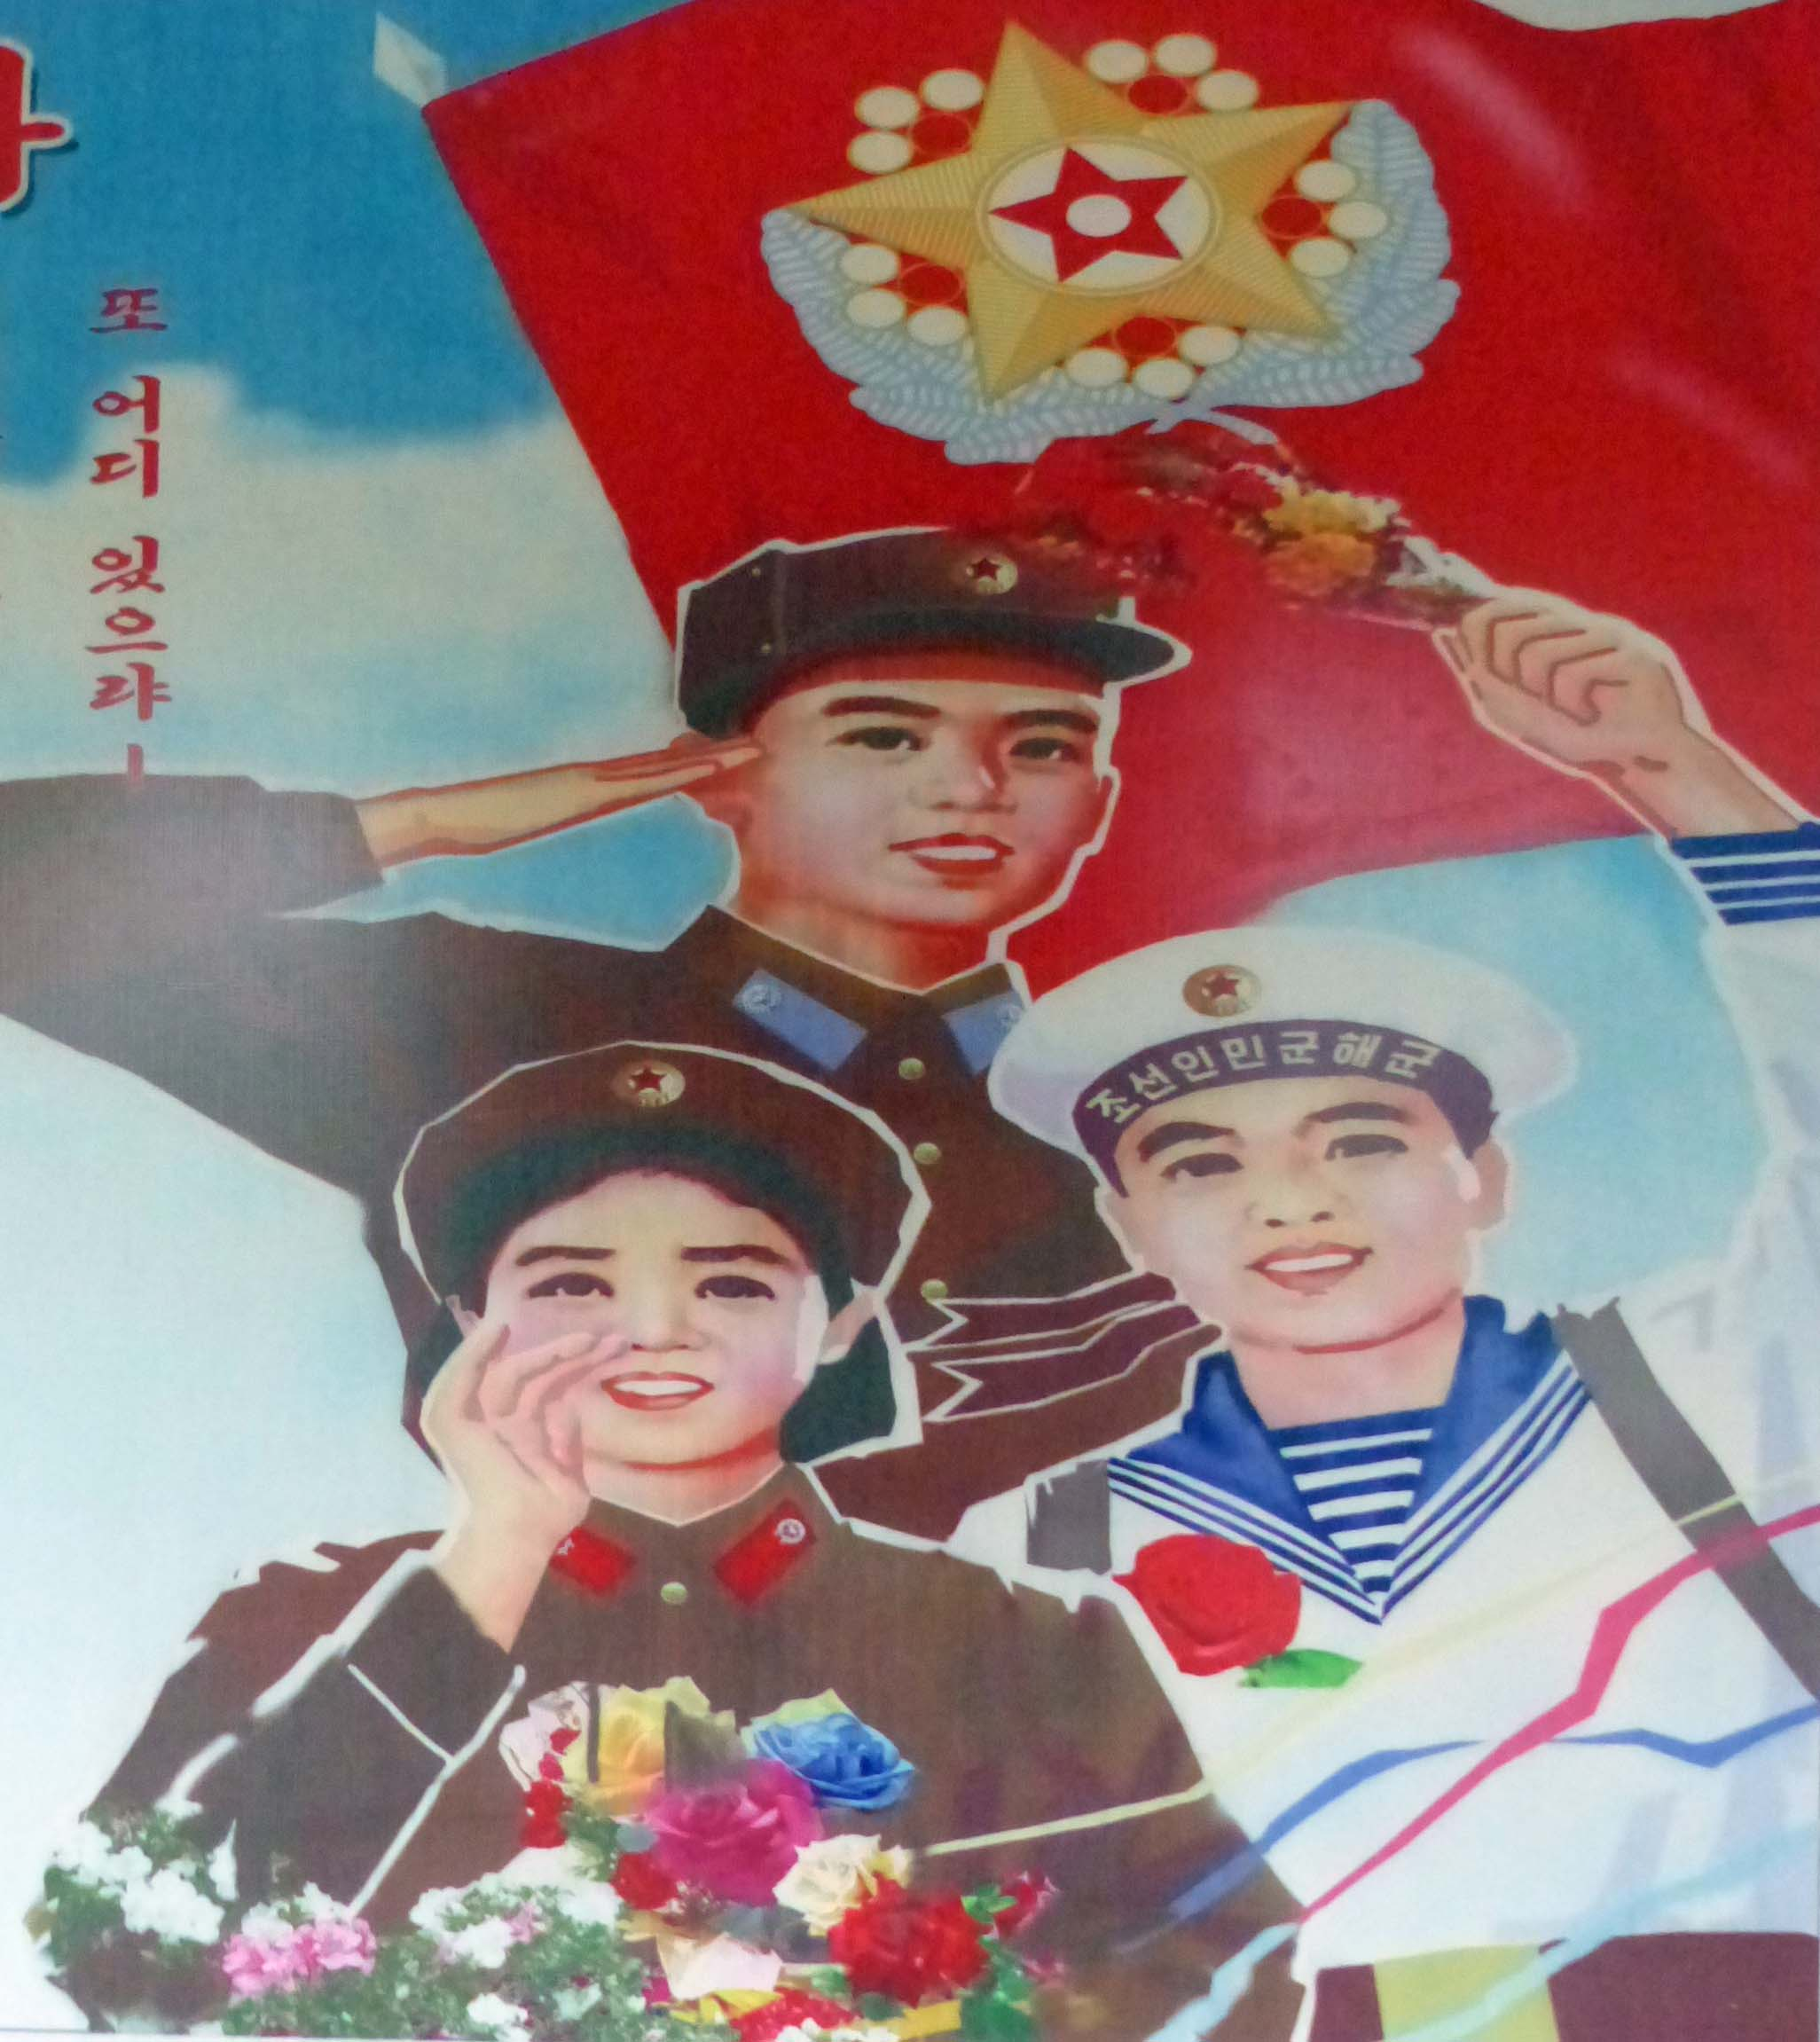 Propaganda poster with young people in military uniform